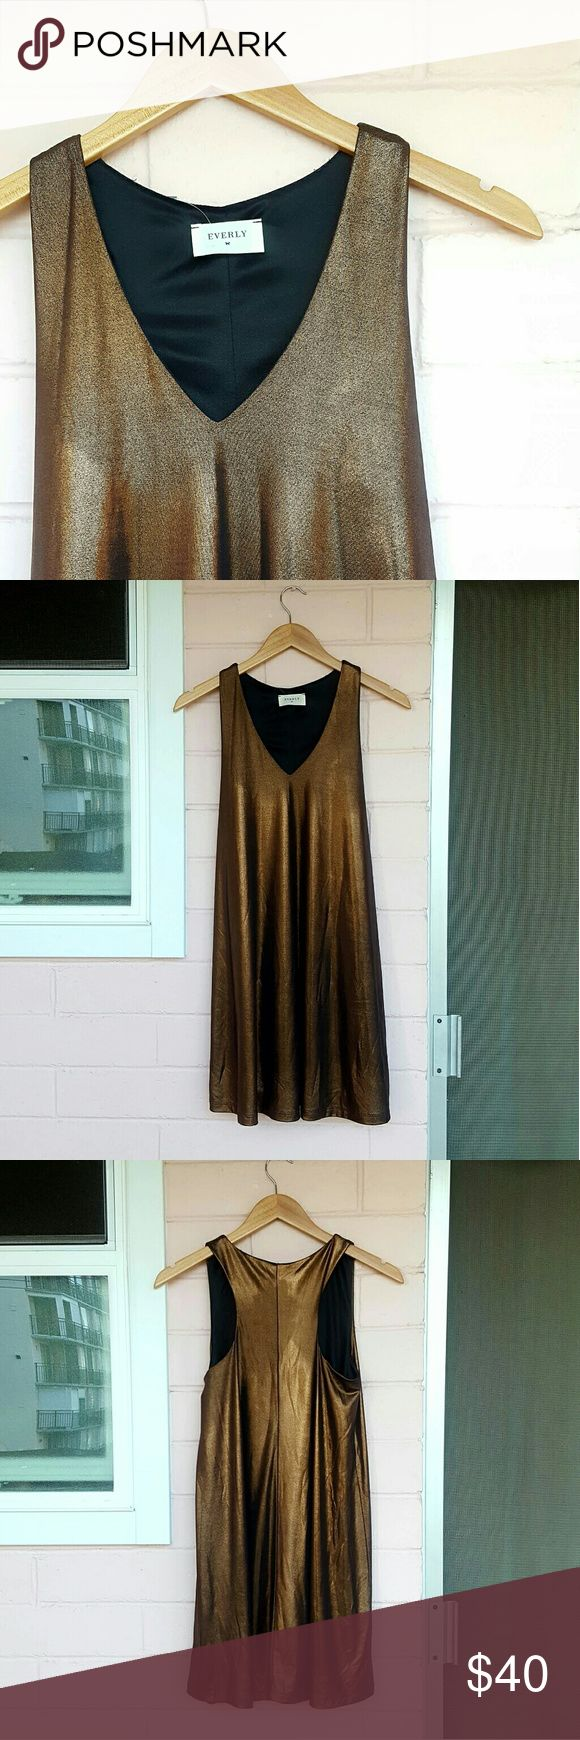 S EVERLY BRONZE DRESS *bronze (tag says rose gold) swing dress *size small *brand new with tags *beautiful dress for any occasion *comes from a smoke-FREE & pet-FREE home Everly Dresses